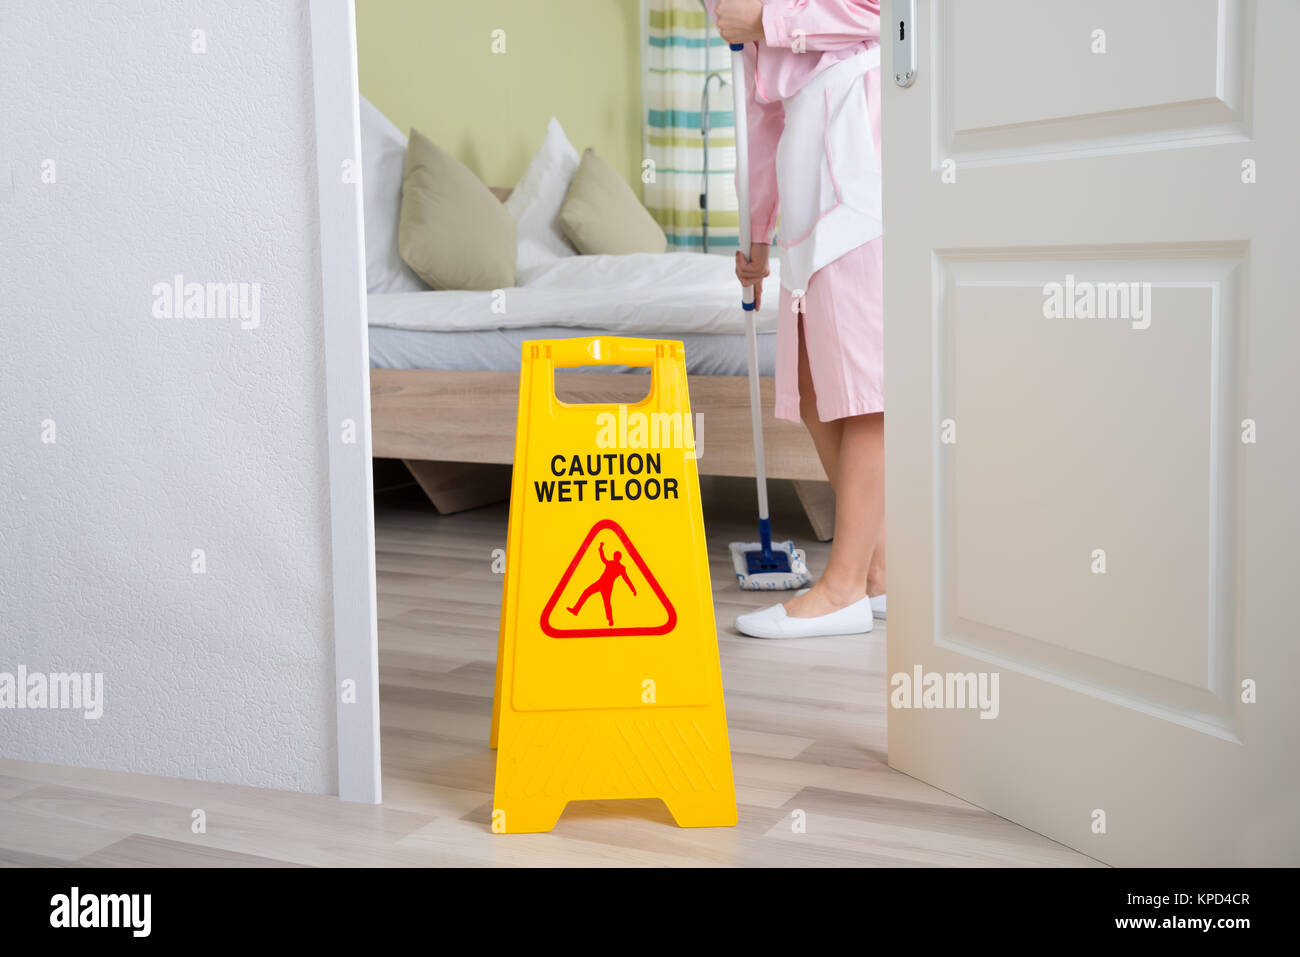 Female Housekeeper Cleaning Floor - Stock Image